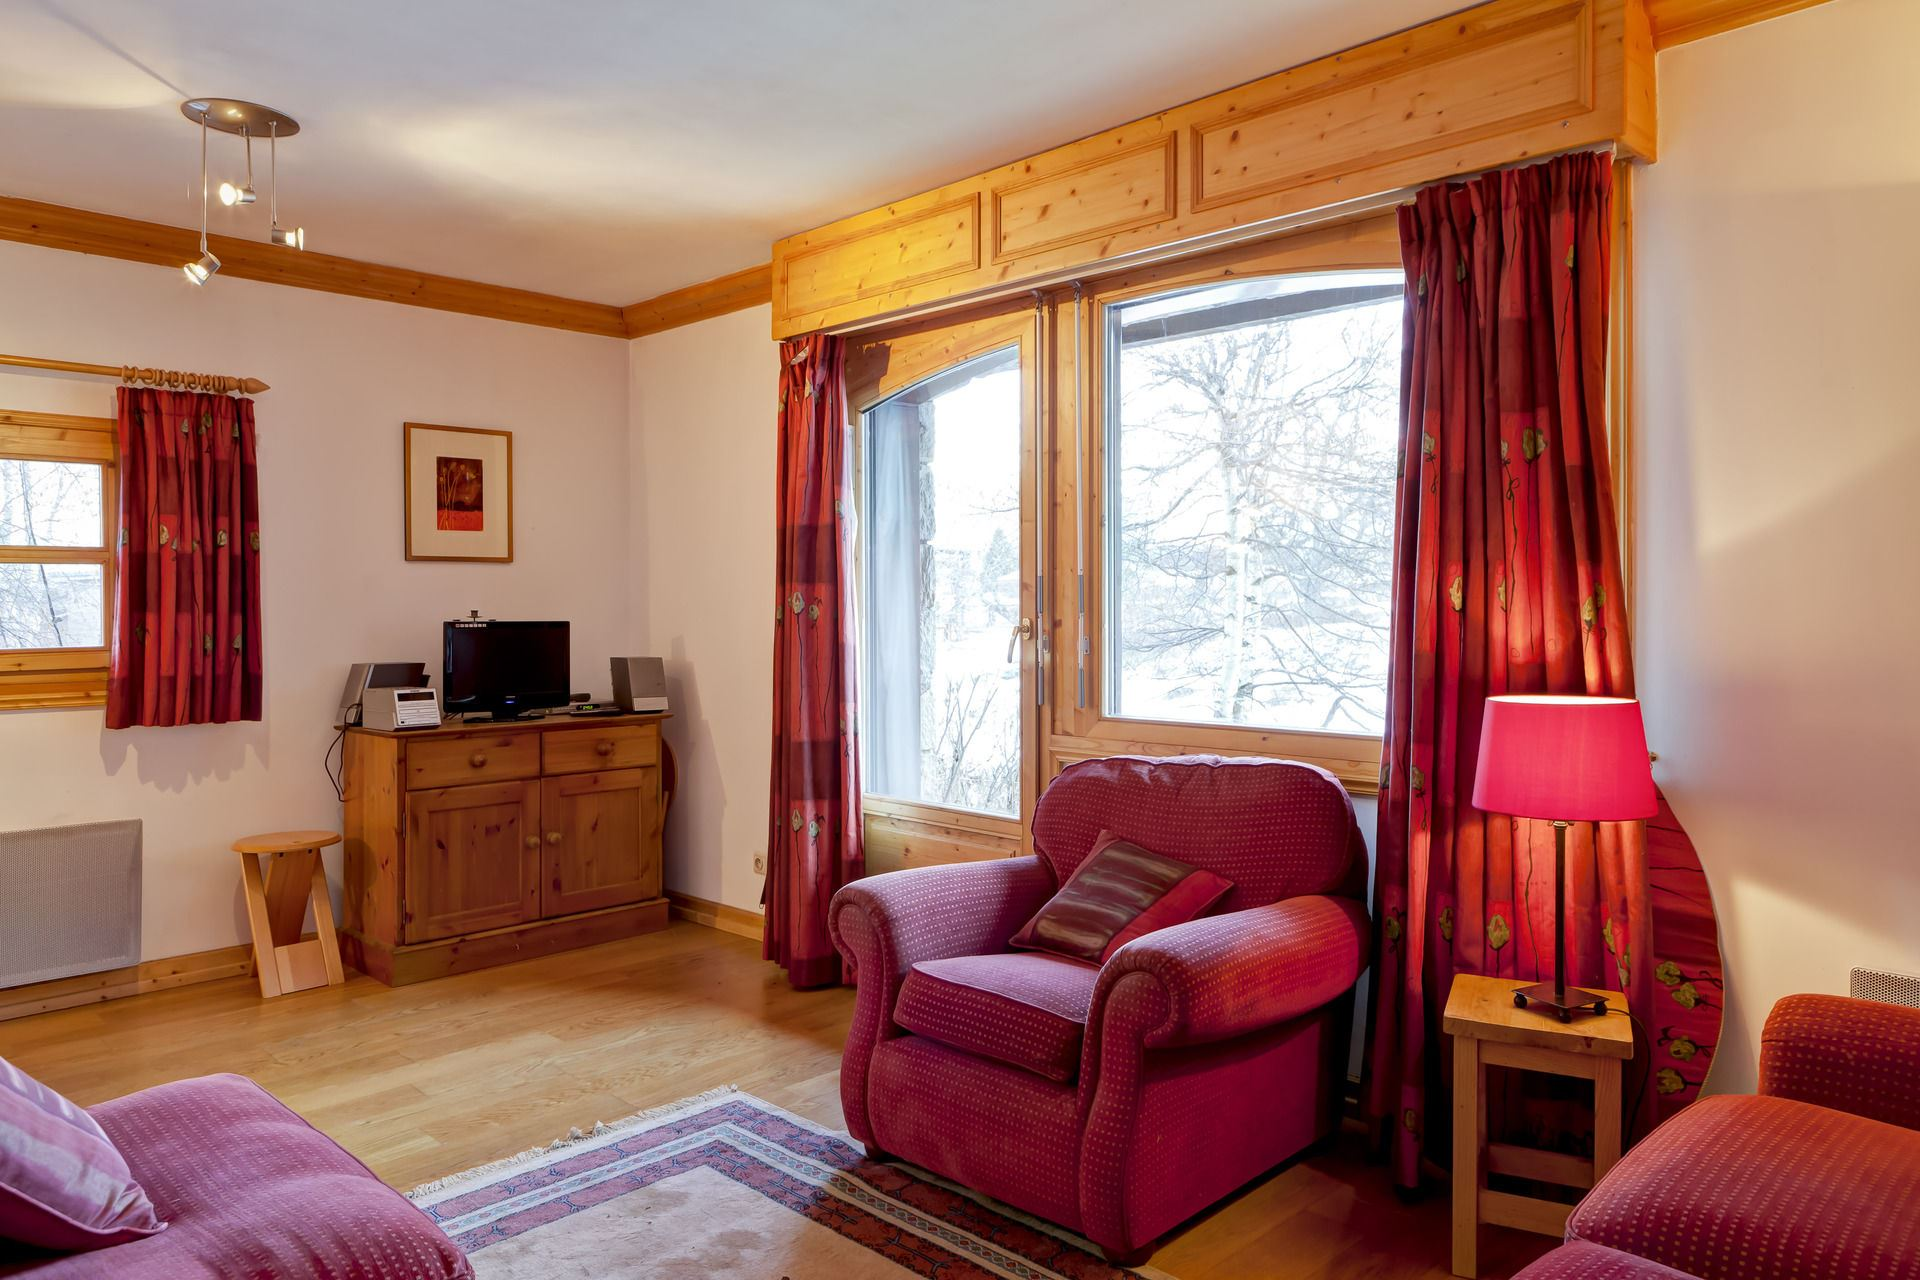 3 rooms 6 people / CHALET DE LA JEAN BLANC B14 (mountain of charm)